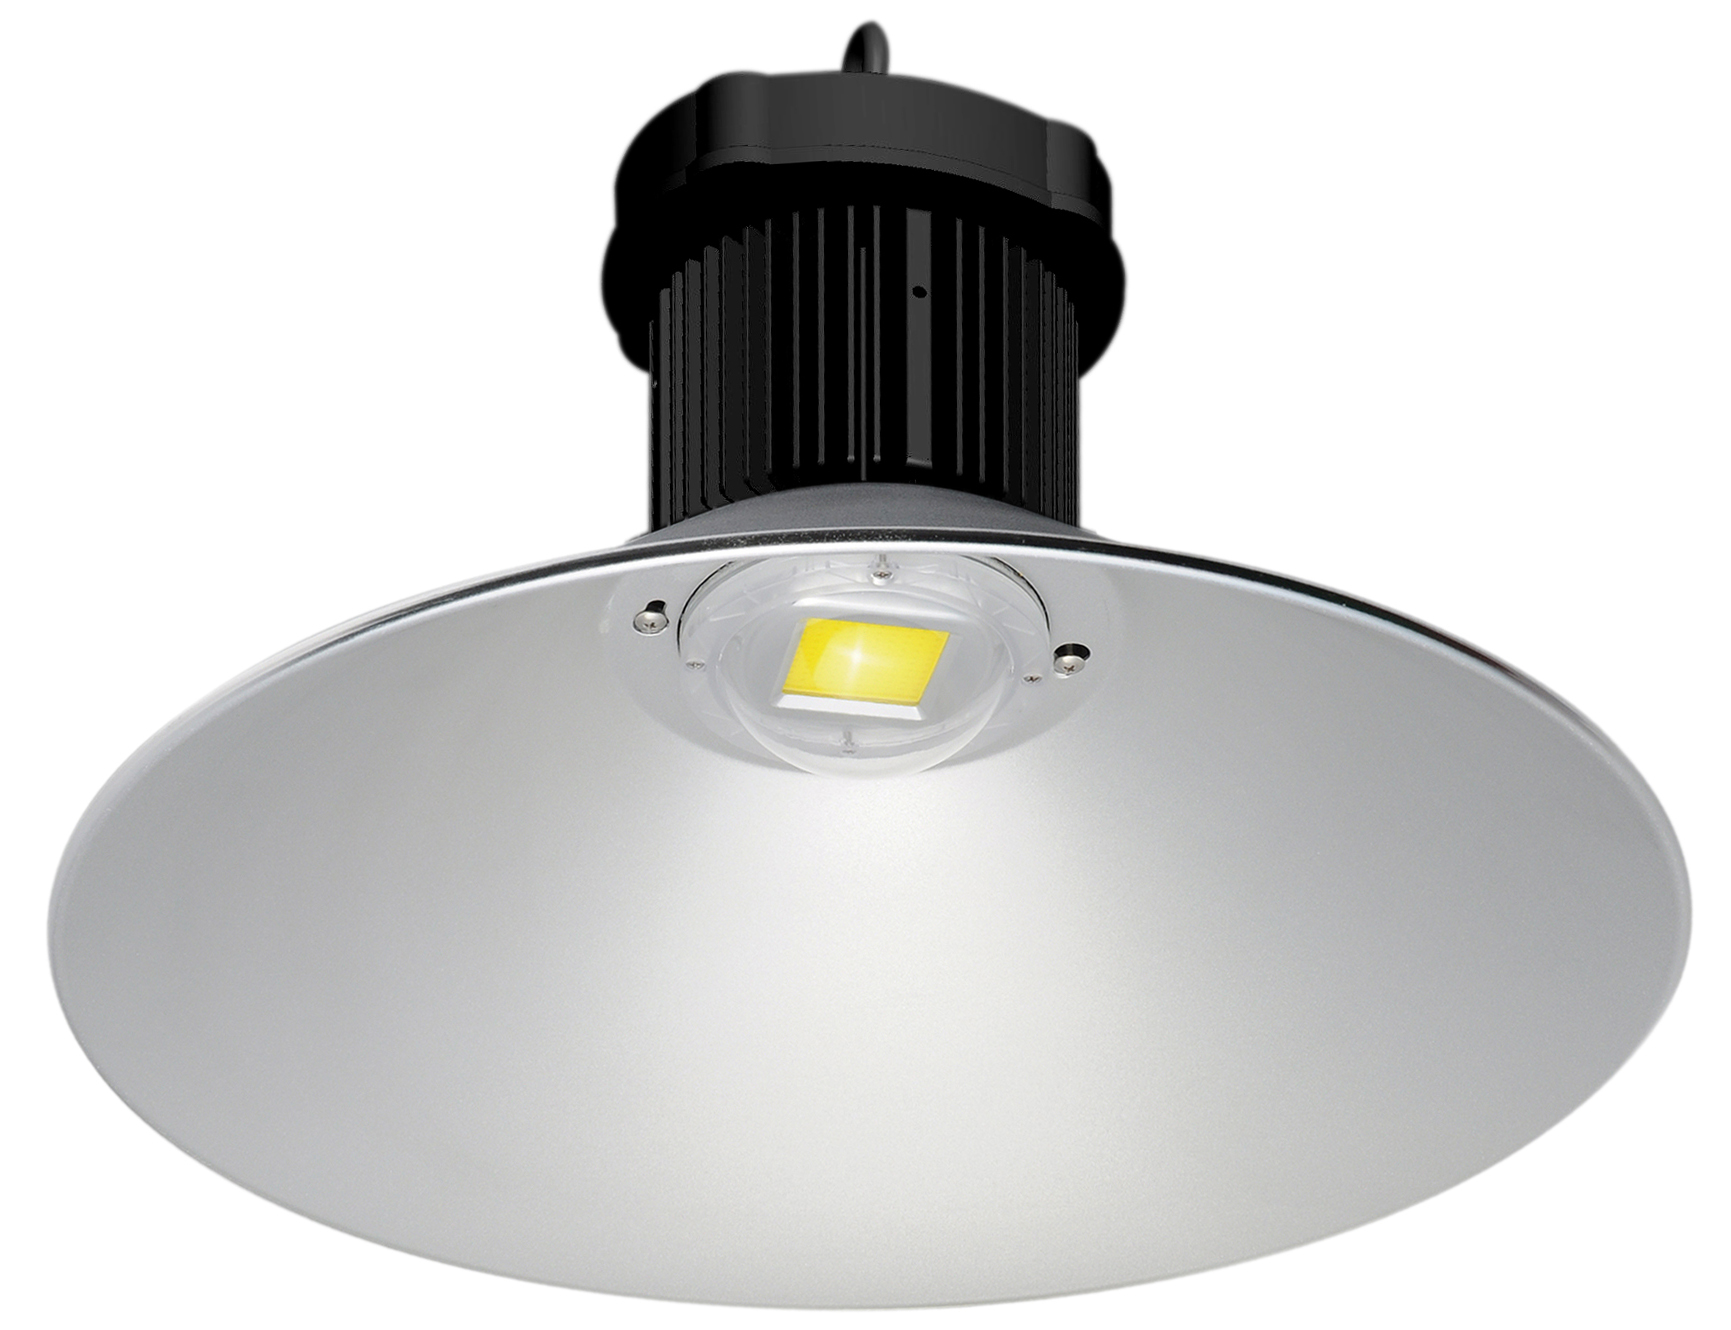 features ul lights listed high white megabay lighting bay new daylight light and products led dlc